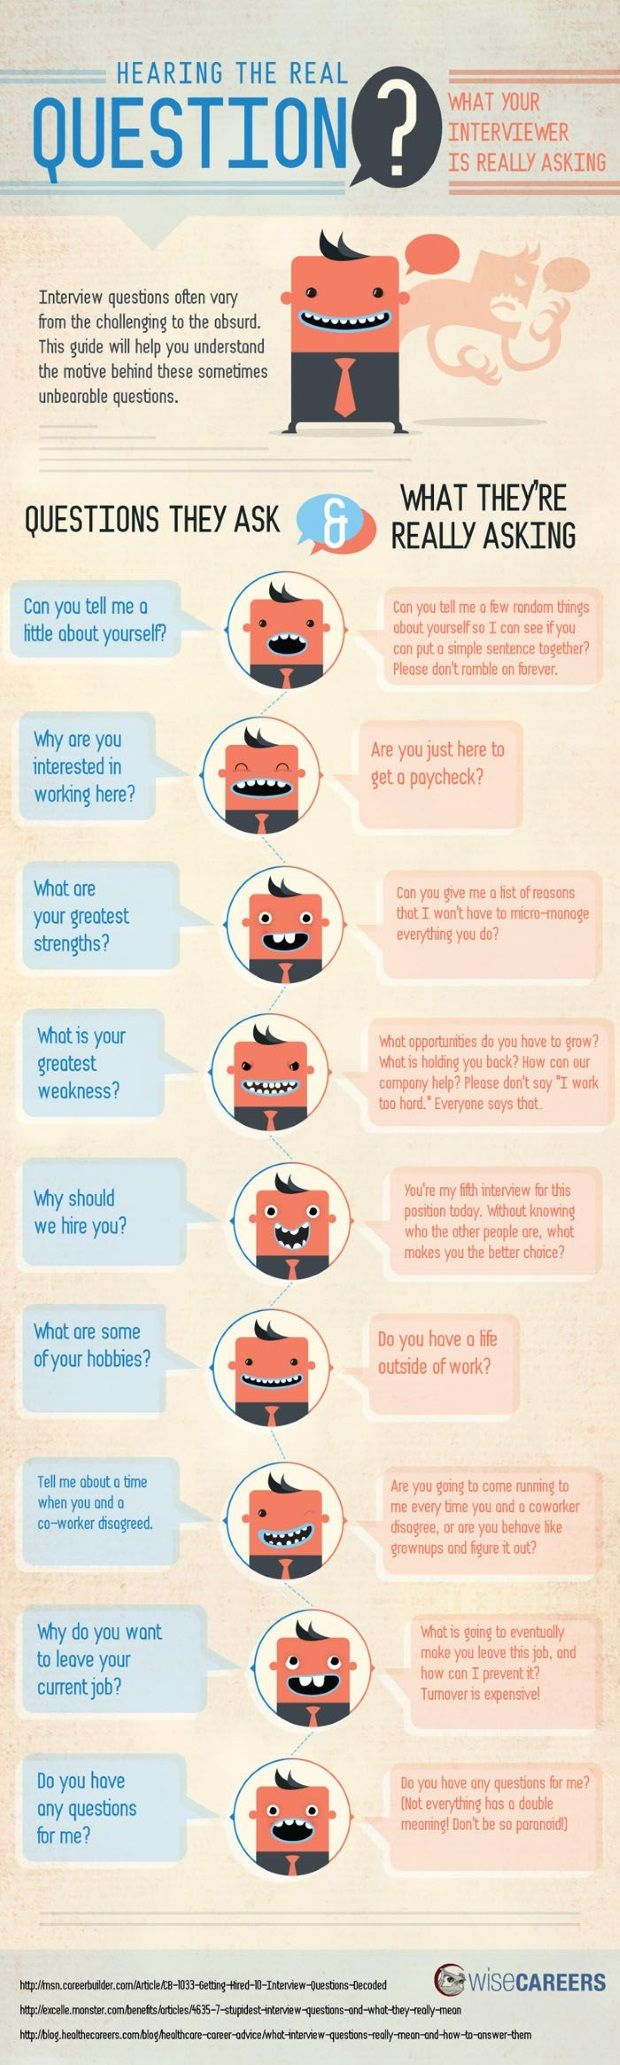 Best 25+ Commonly asked interview questions ideas on Pinterest